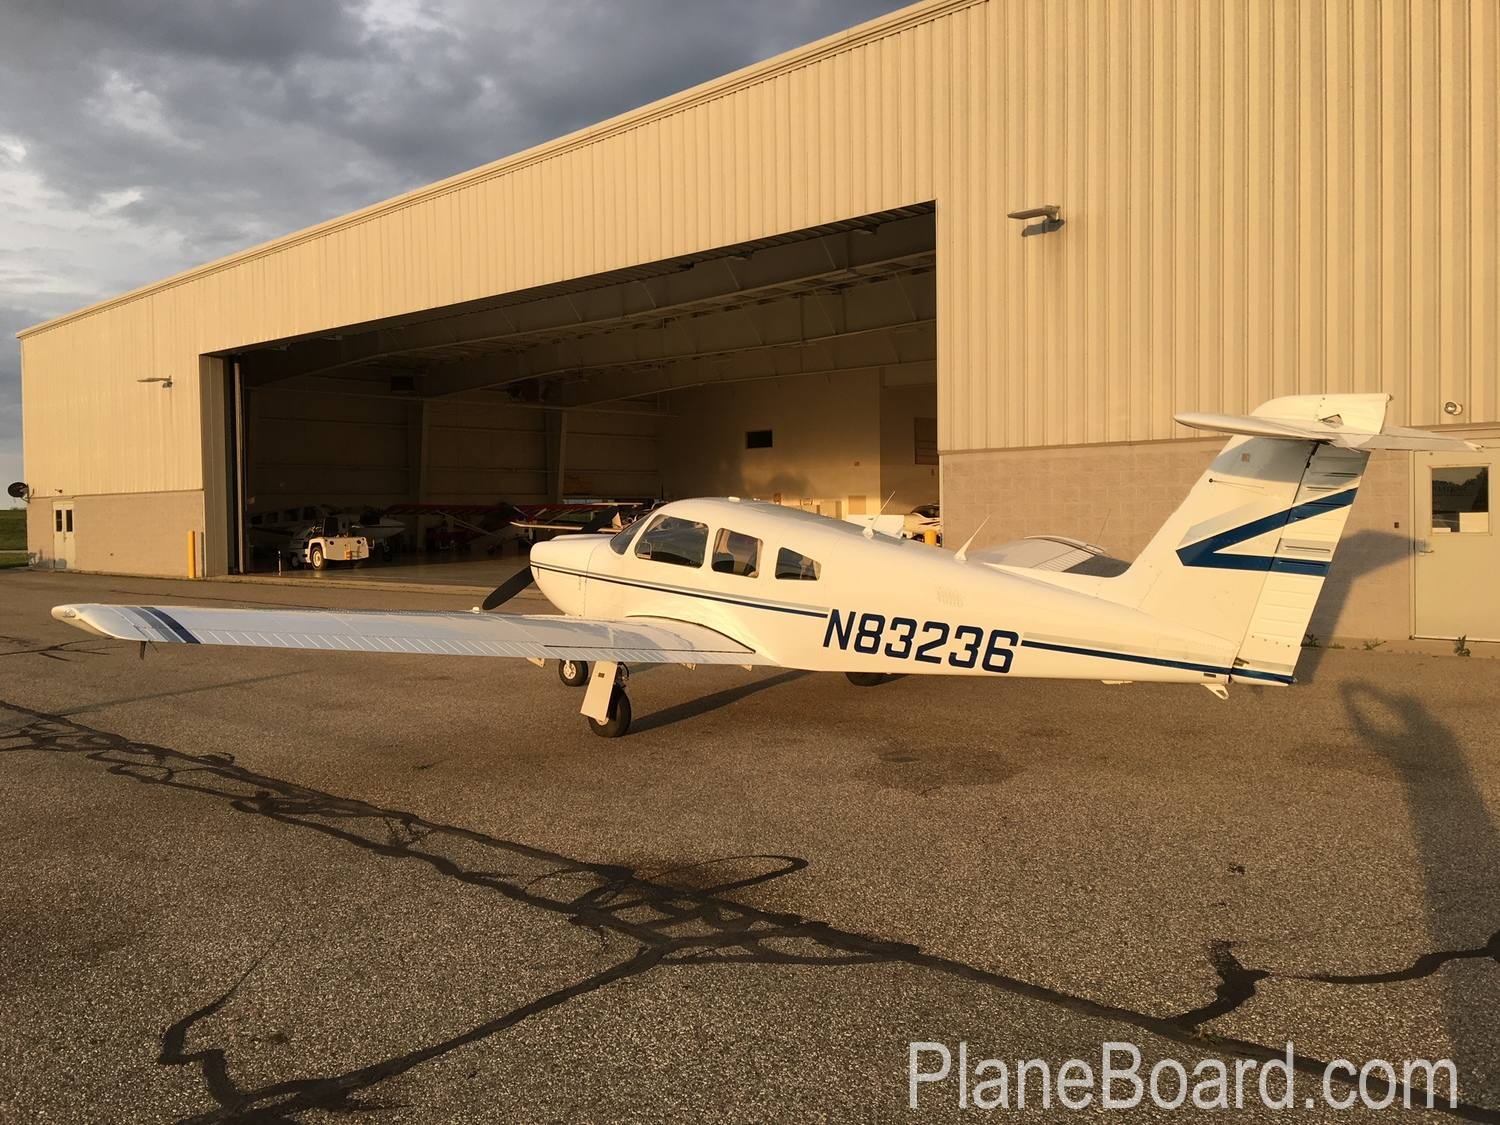 1981 Piper Arrow IV exterior 4